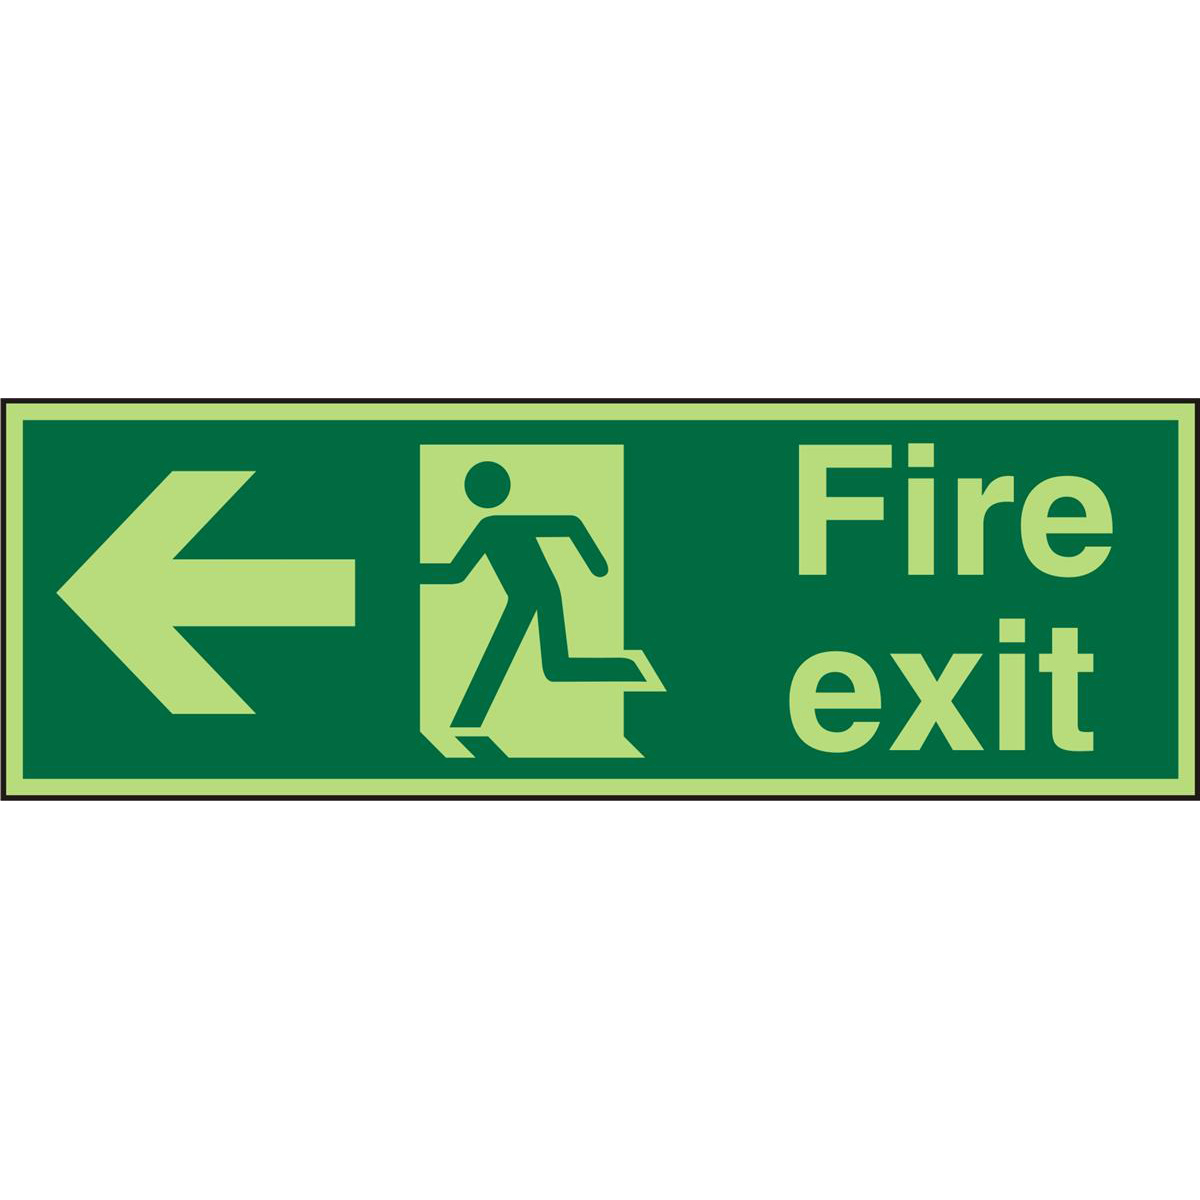 Photolum Sign 600x200 S/A FireExit Man Running&Arrow Left Ref PSP120SAV600x200 *Up to 10 Day Leadtime*